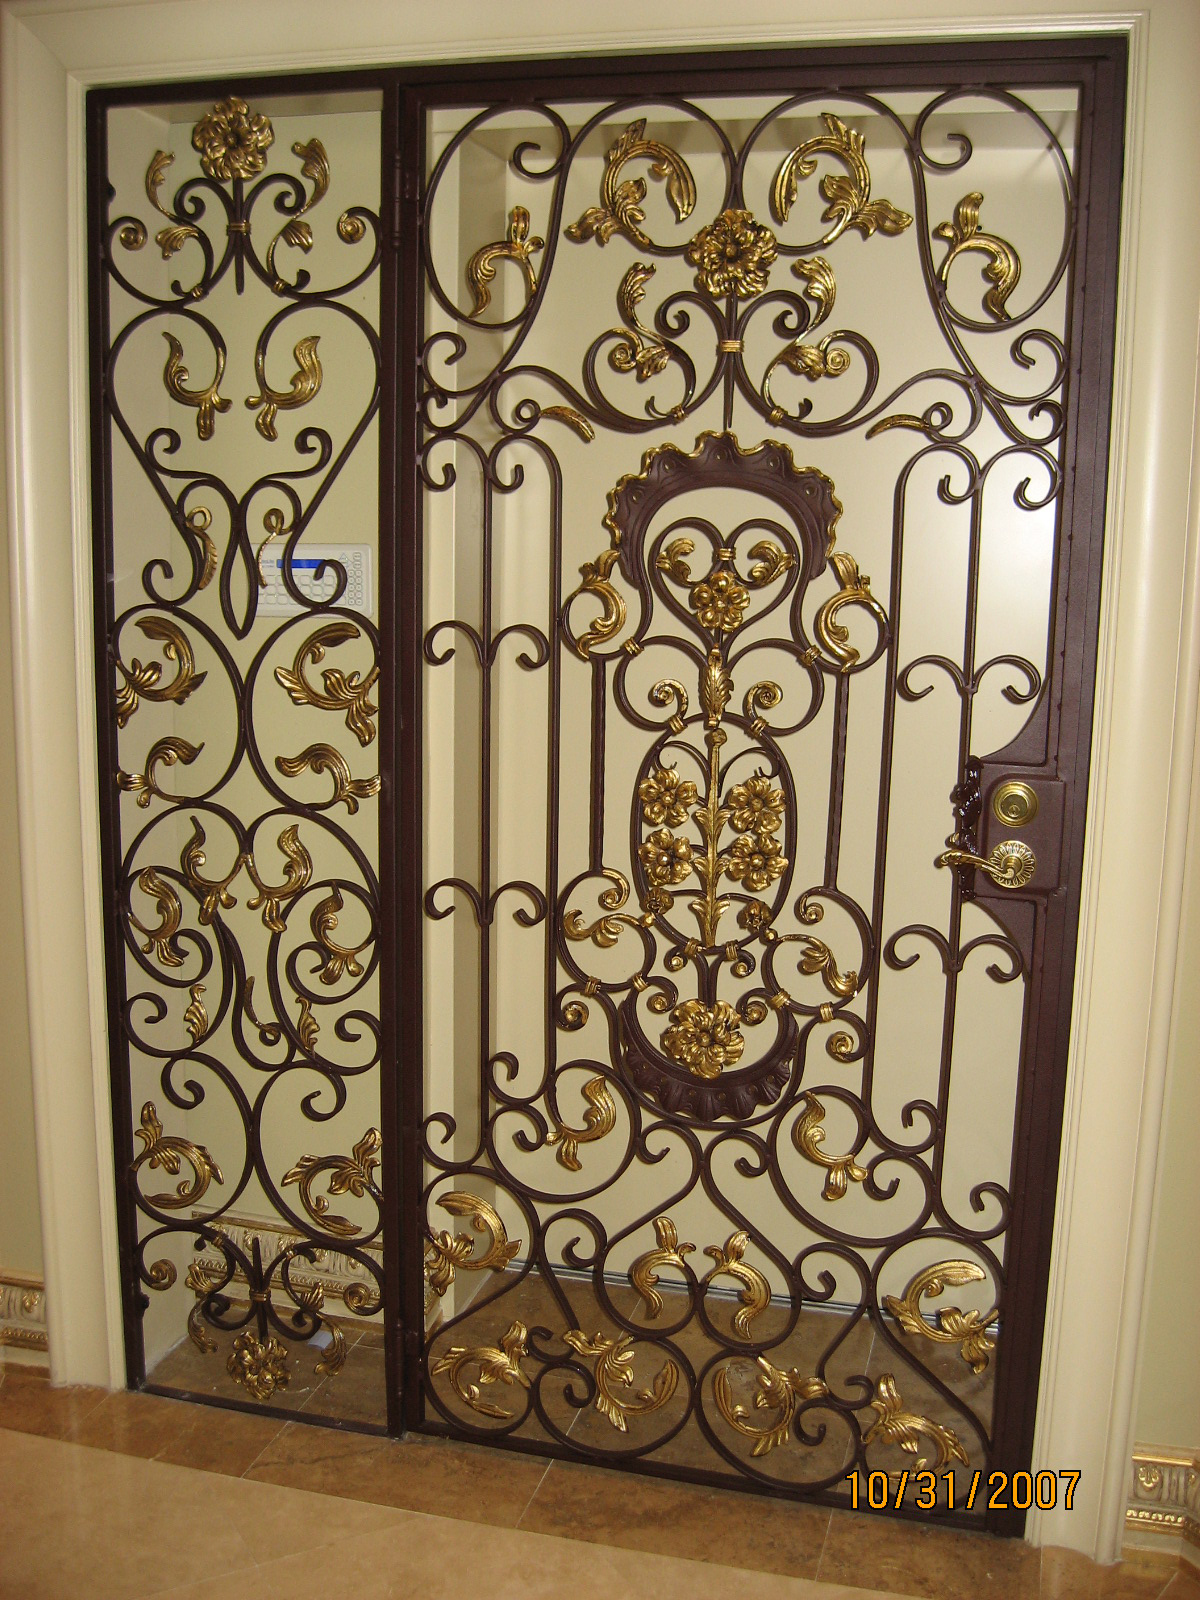 Source: file:///Users/seesincelevator/Desktop/FACEBOOK%20AND%20BLOGS/Impressive%20Elevator%20Doors%20and%20Panels%20-%20metalwork/graphics-gat0904.jpg